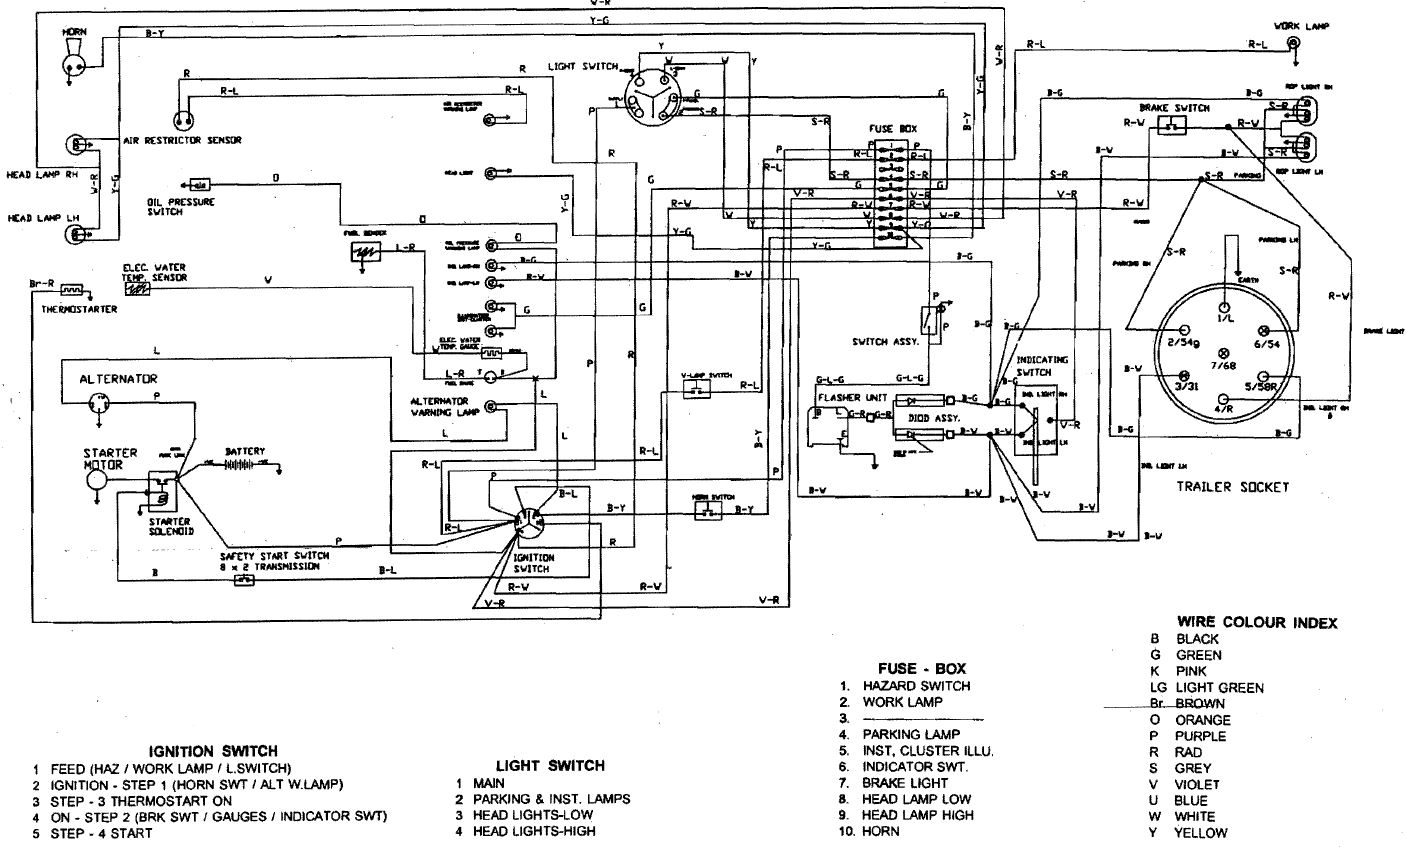 20158463319_b82d524c3d_o ignition switch wiring diagram ignition switch wiring diagram at gsmx.co